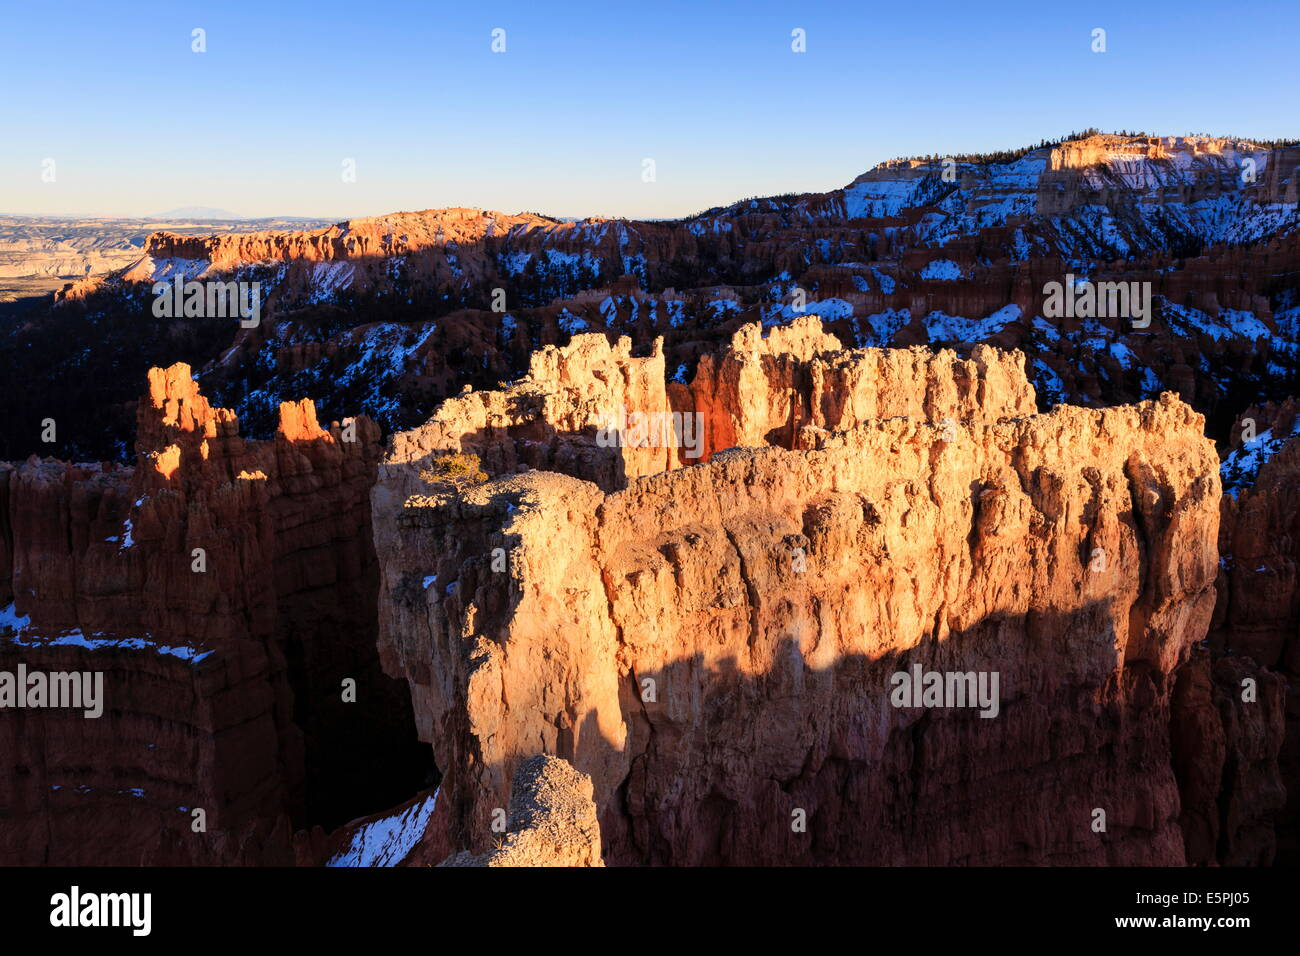 Rocks lit by late afternoon sun with snow, from Sunset Point, Bryce Canyon National Park, Utah, United States of - Stock Image